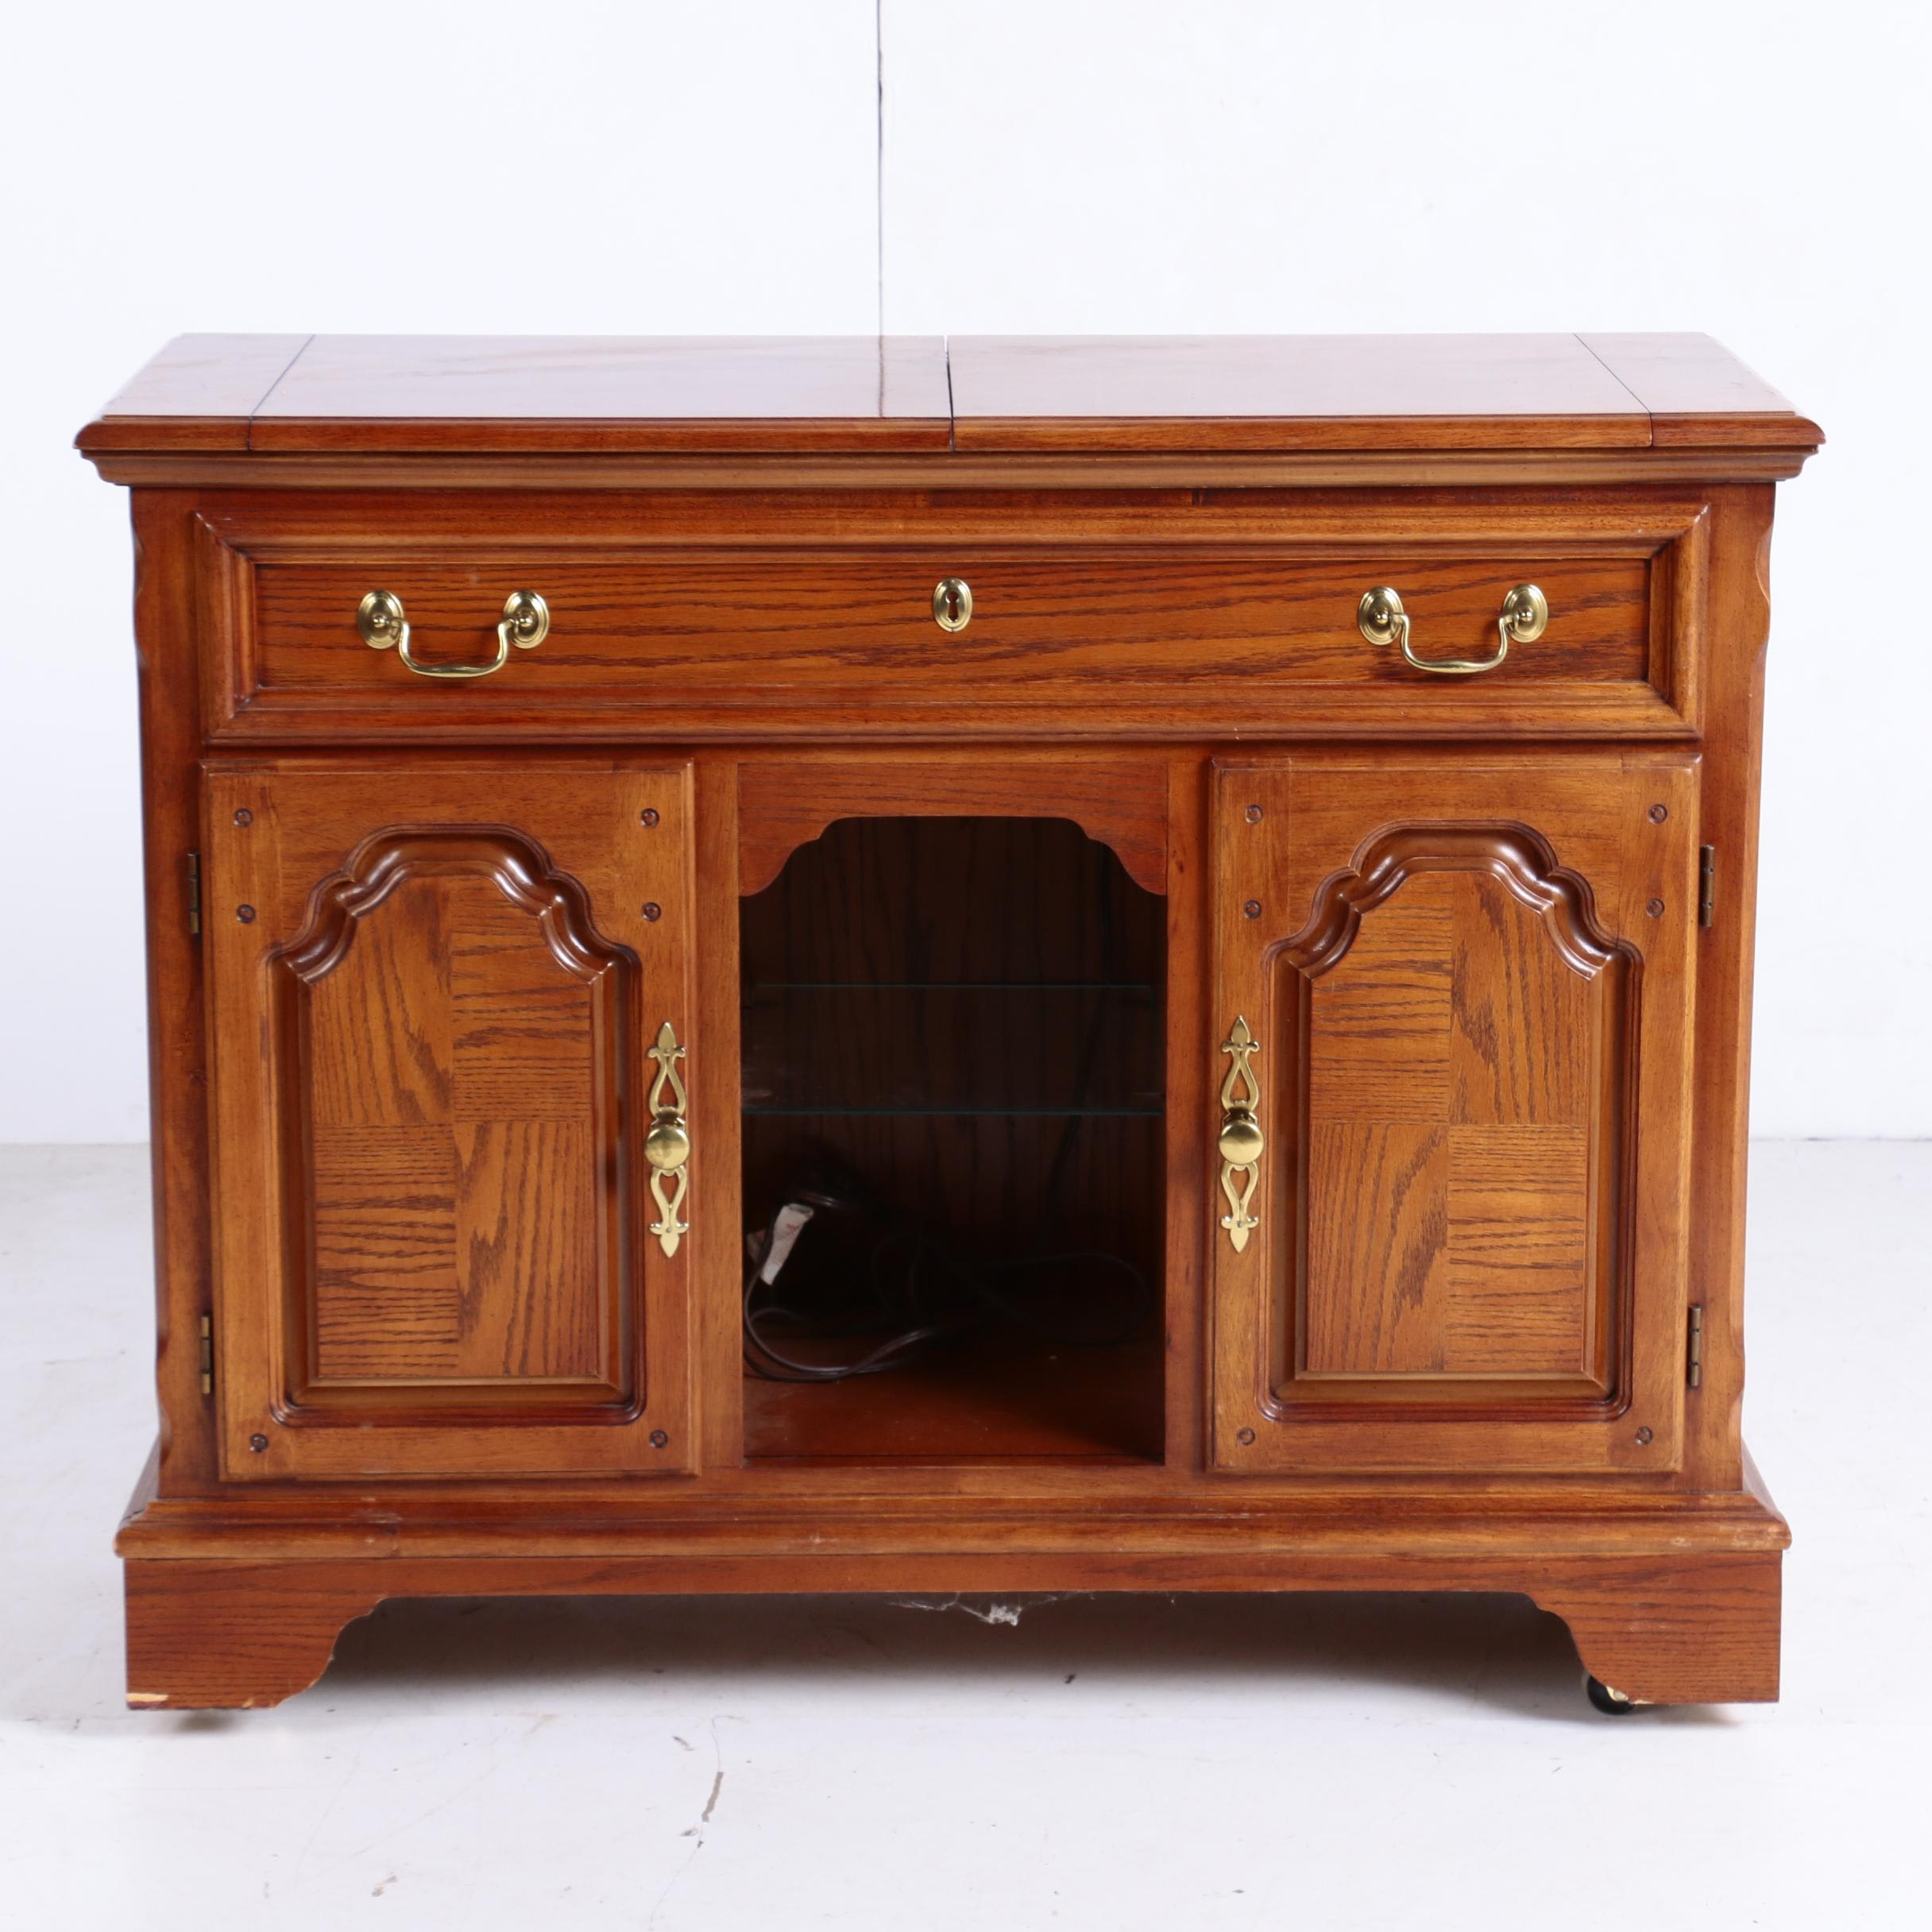 George III Style Oak-Veneered Flip-Top Server by Lexington, 20th Century